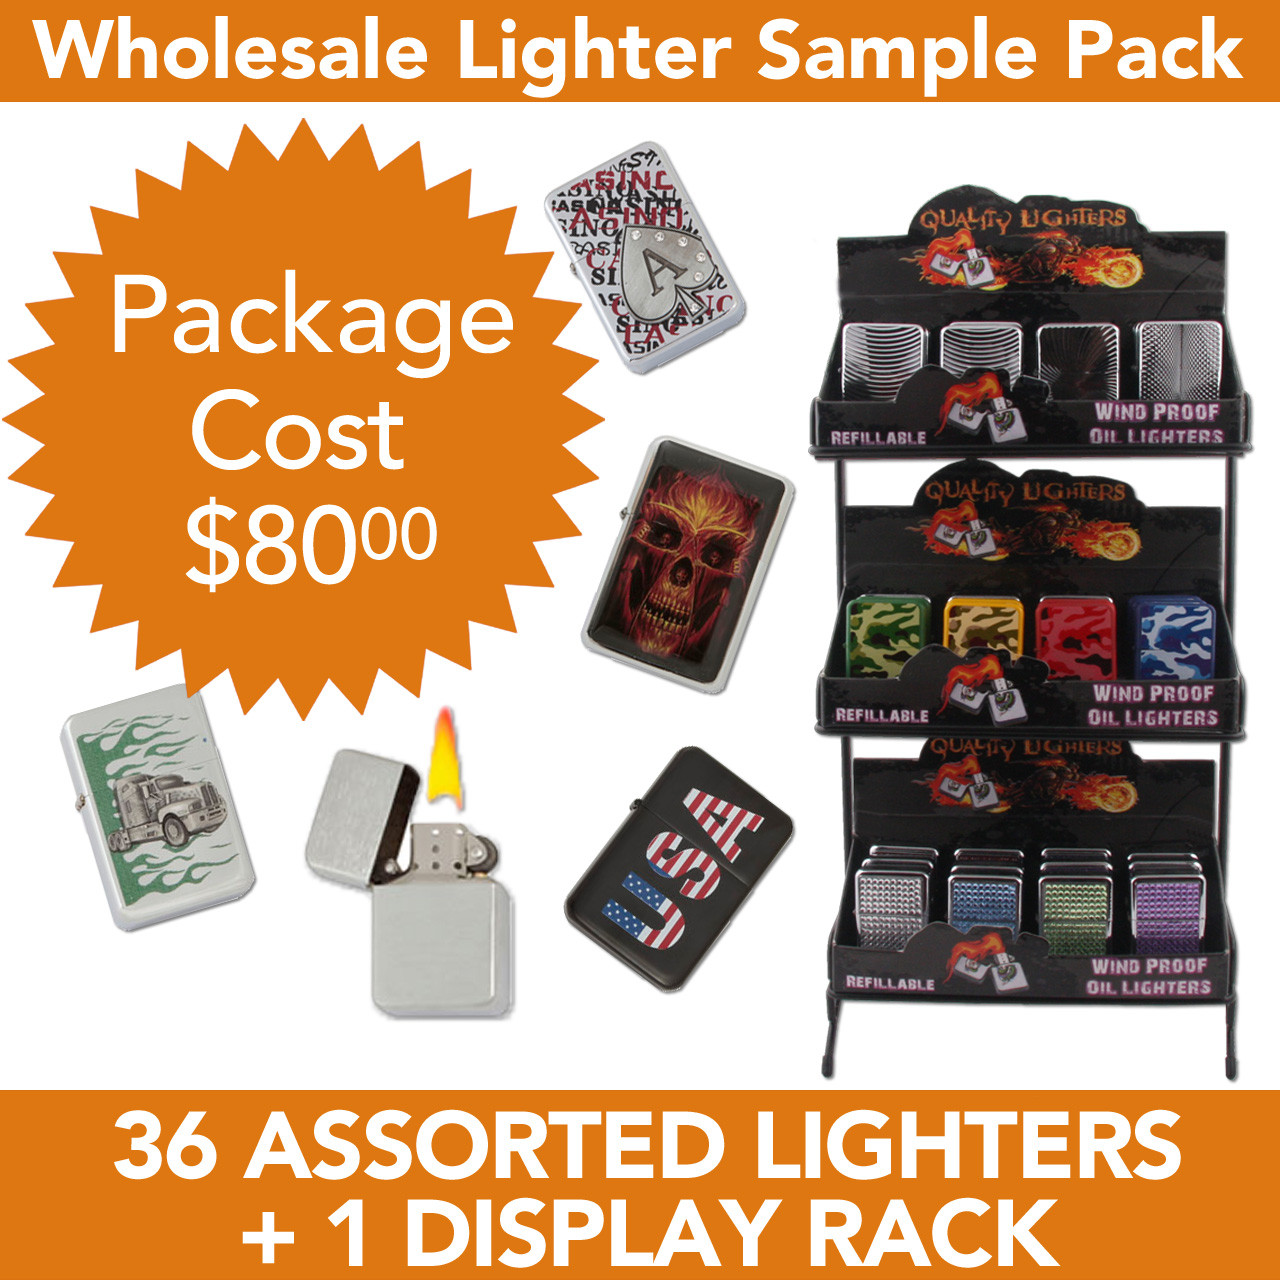 36 Assorted Lighters | Display Stand | Display Boxes Included